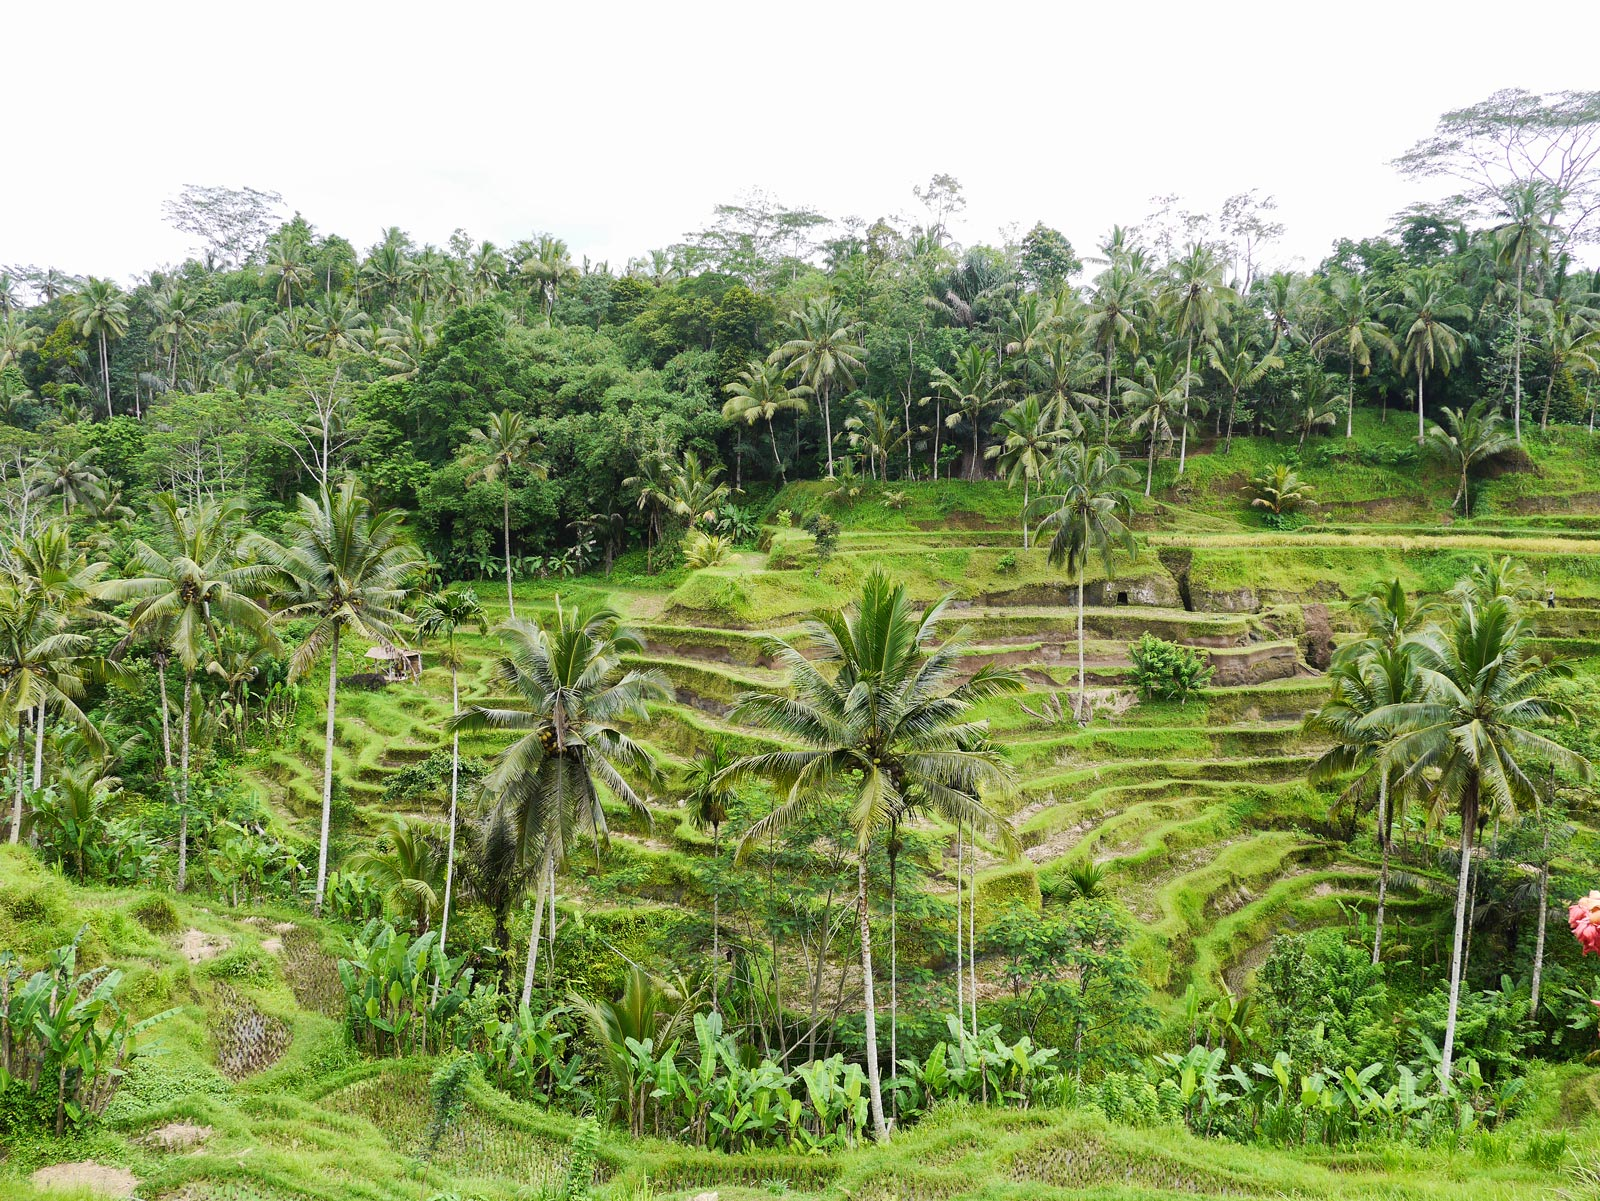 Admiring the Pretty Tegallalang Rice Terraces in Ubud - Bali, Indonesia